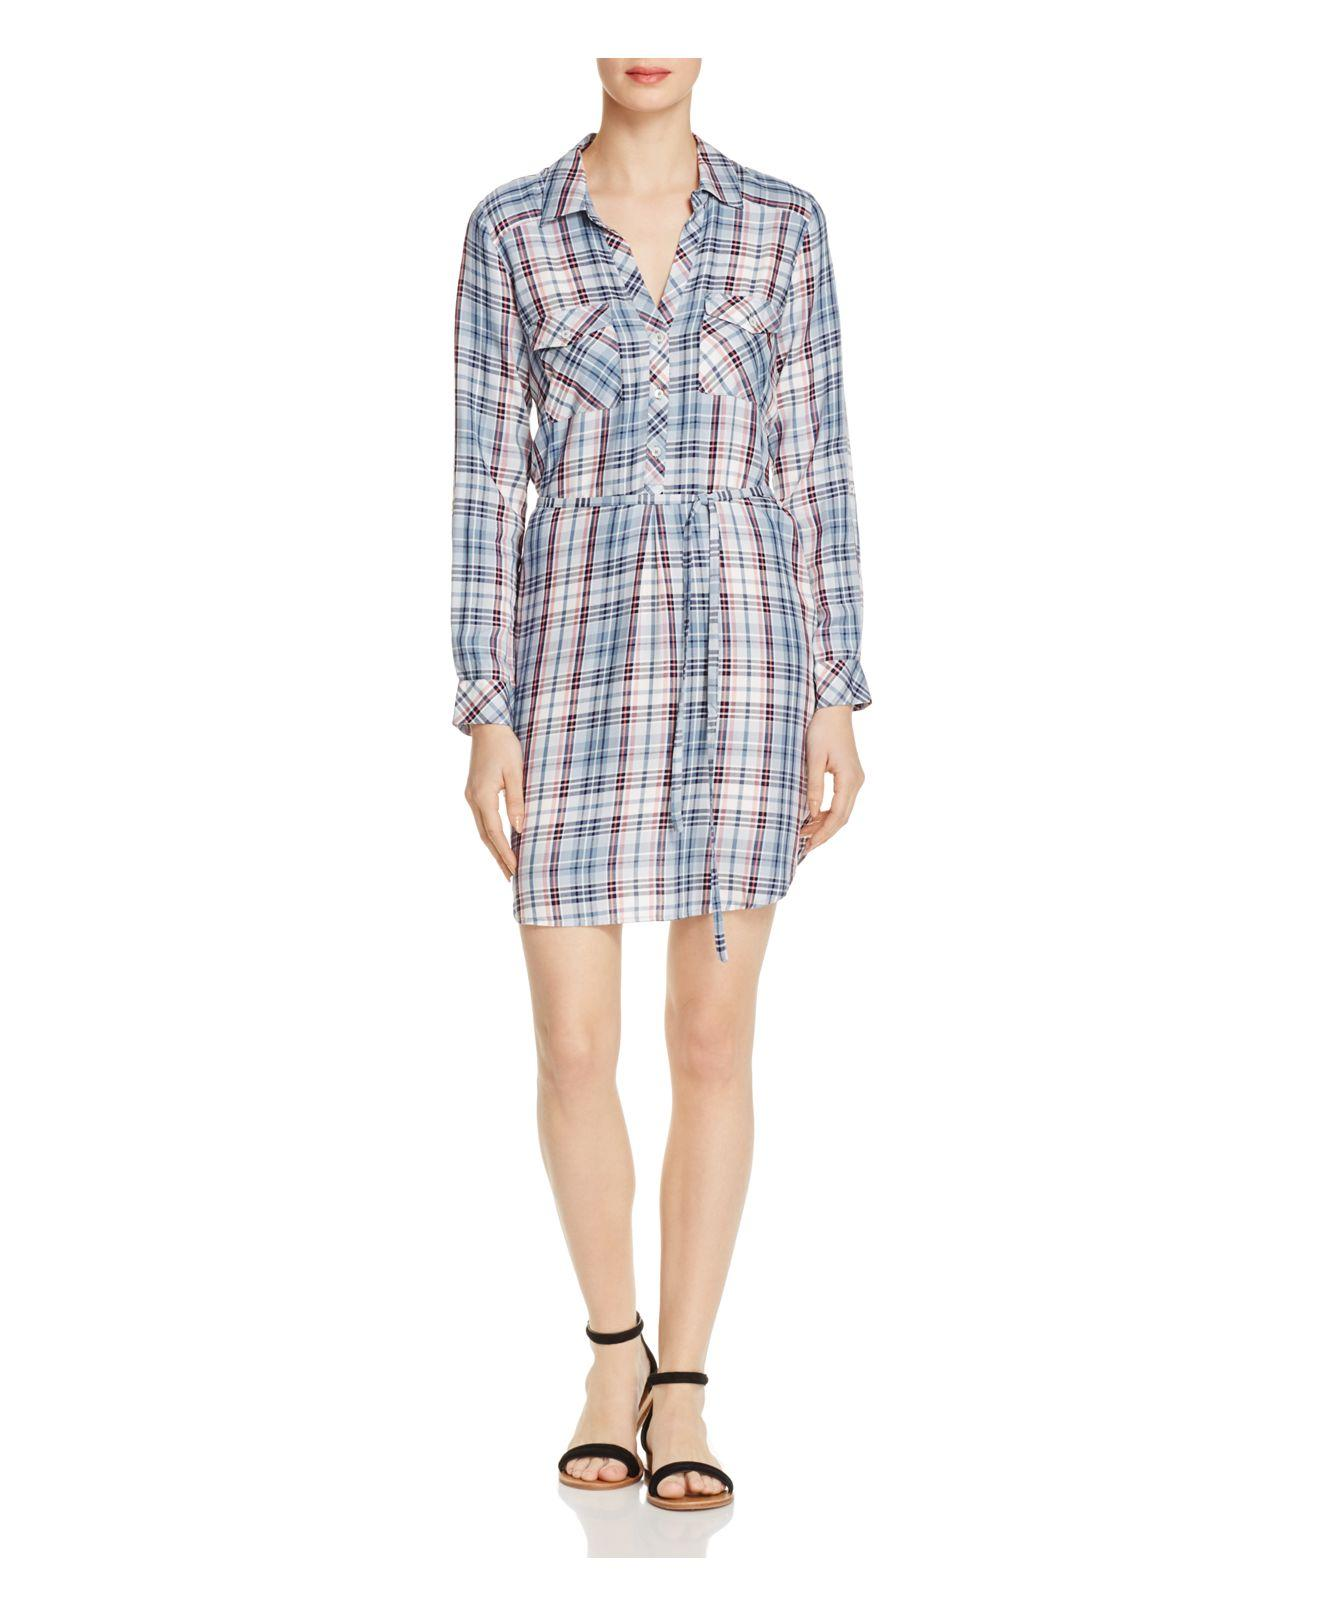 Lyst soft joie dashalynn plaid shirt dress in blue for Soft joie plaid shirt